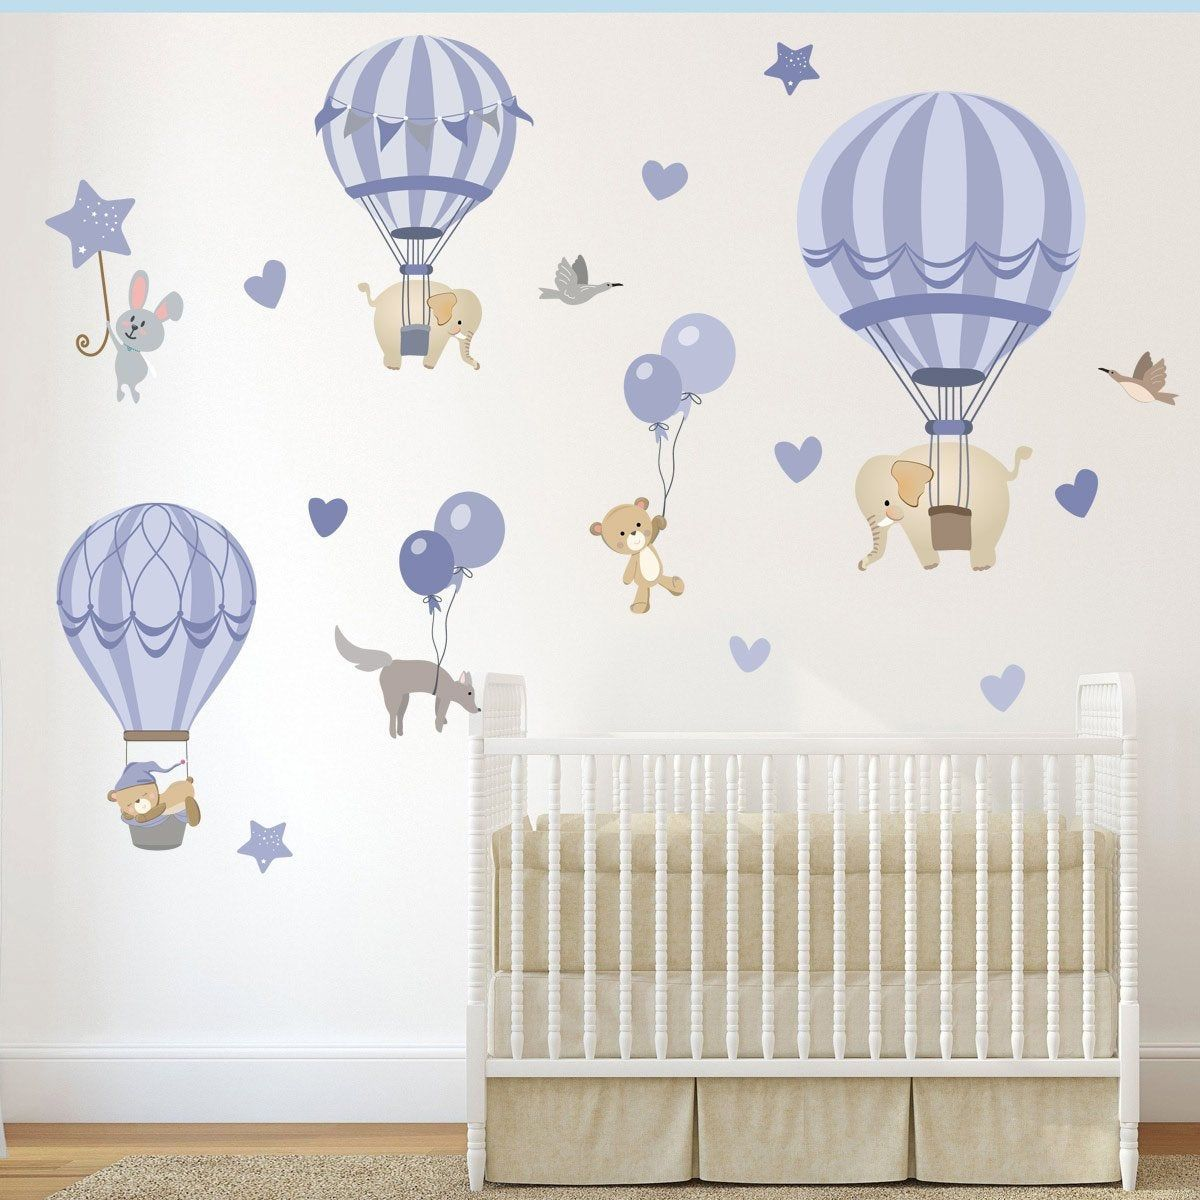 Nursery Wall Stickers Hot Air Balloons With Elephant Bears Etsy Nursery Wall Stickers Nursery Wall Decals Boy Kids Wall Decals